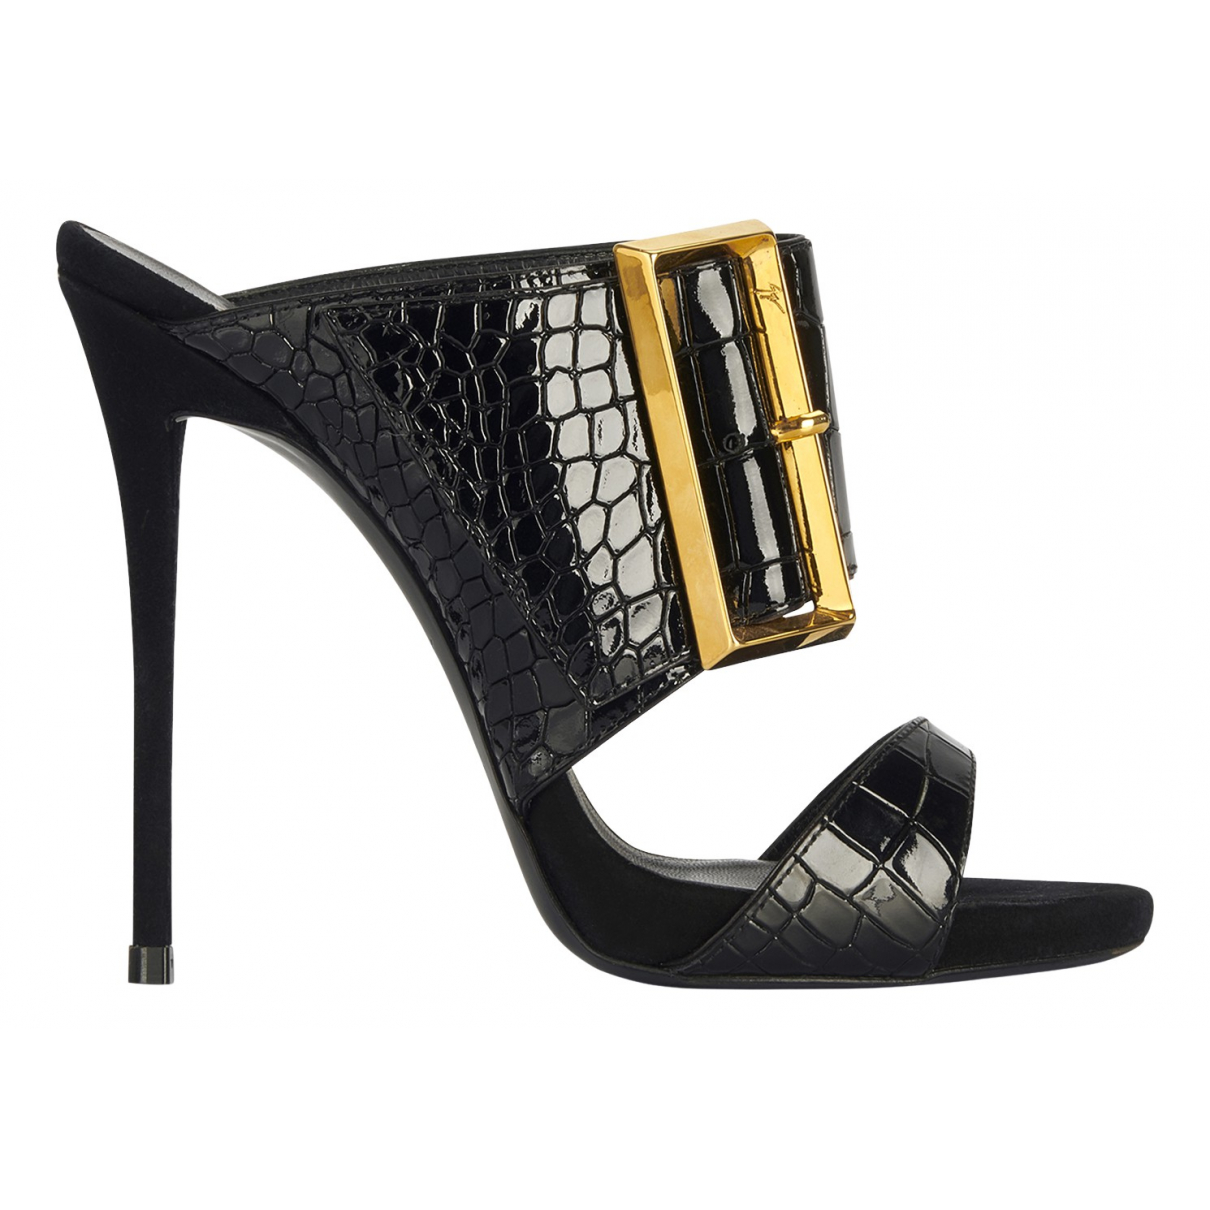 Giuseppe Zanotti N Black Leather Sandals for Women 5 UK